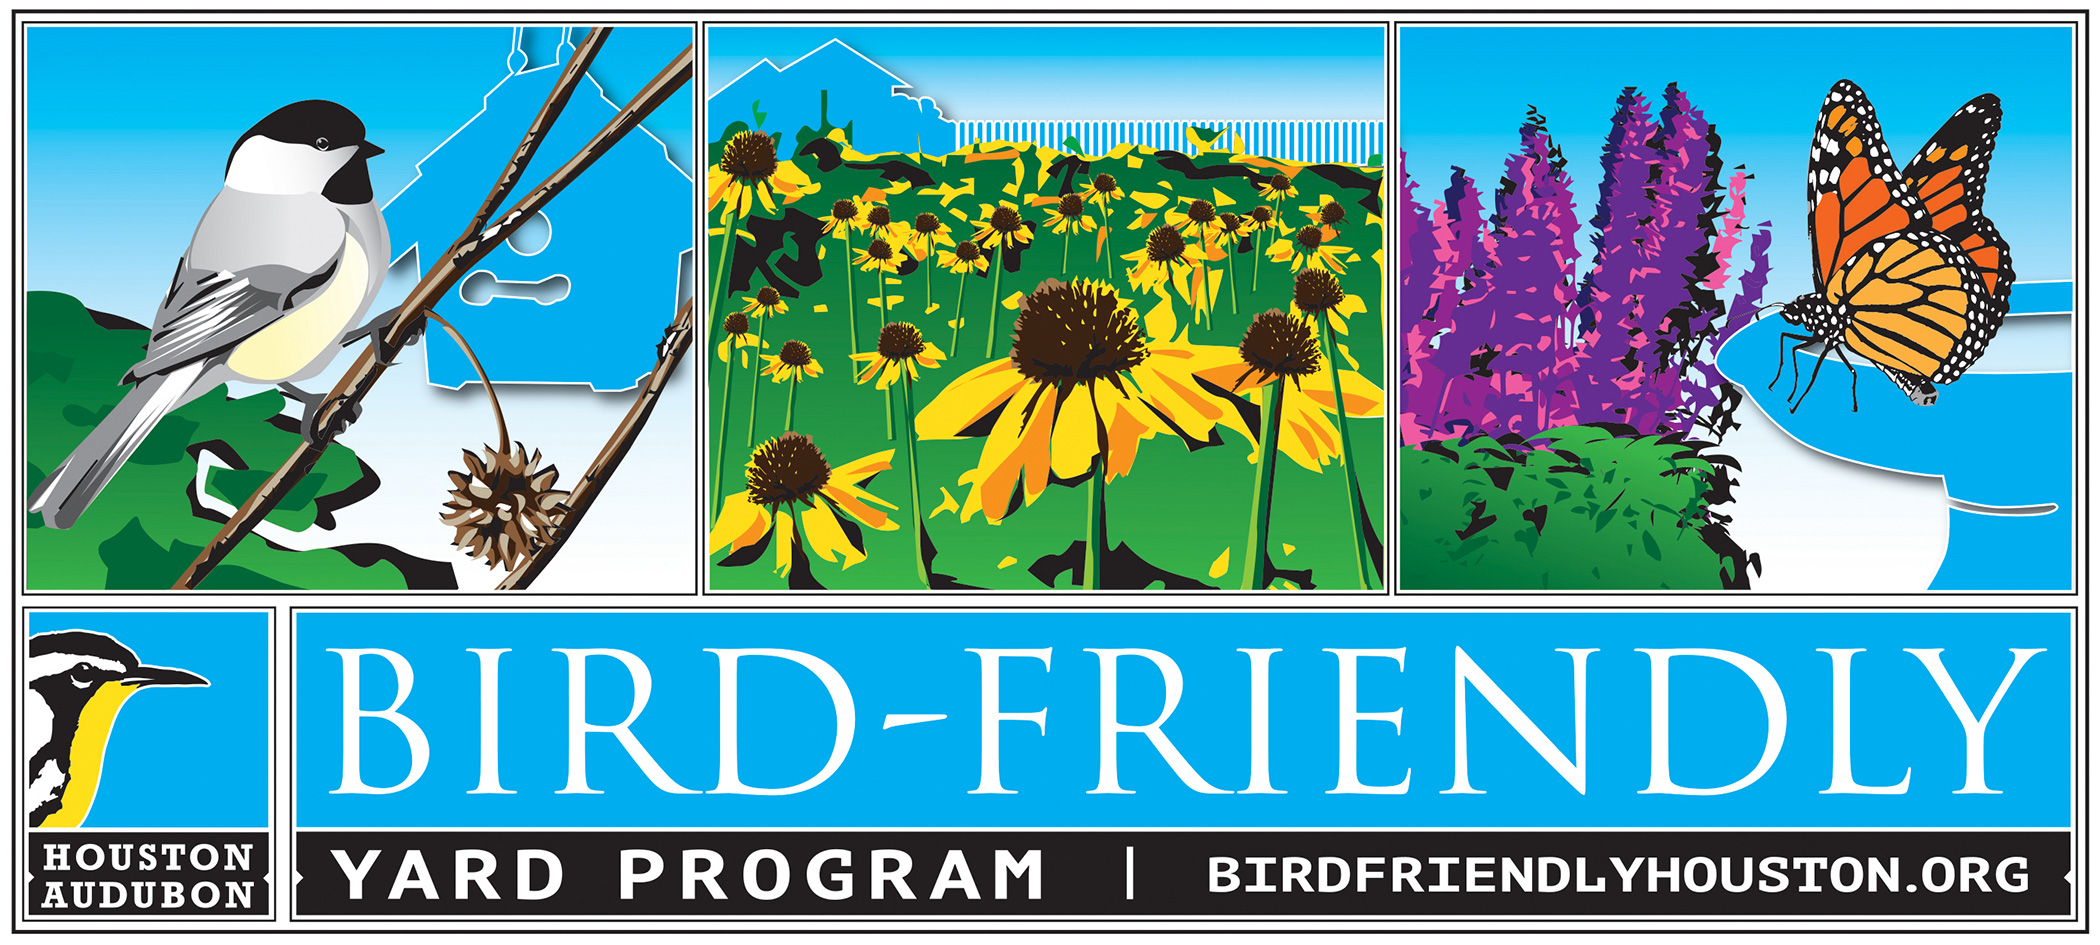 http://www.birdfriendlyhouston.org/wp-content/uploads/2017/01/YardProgram_RGB_Large.jpg